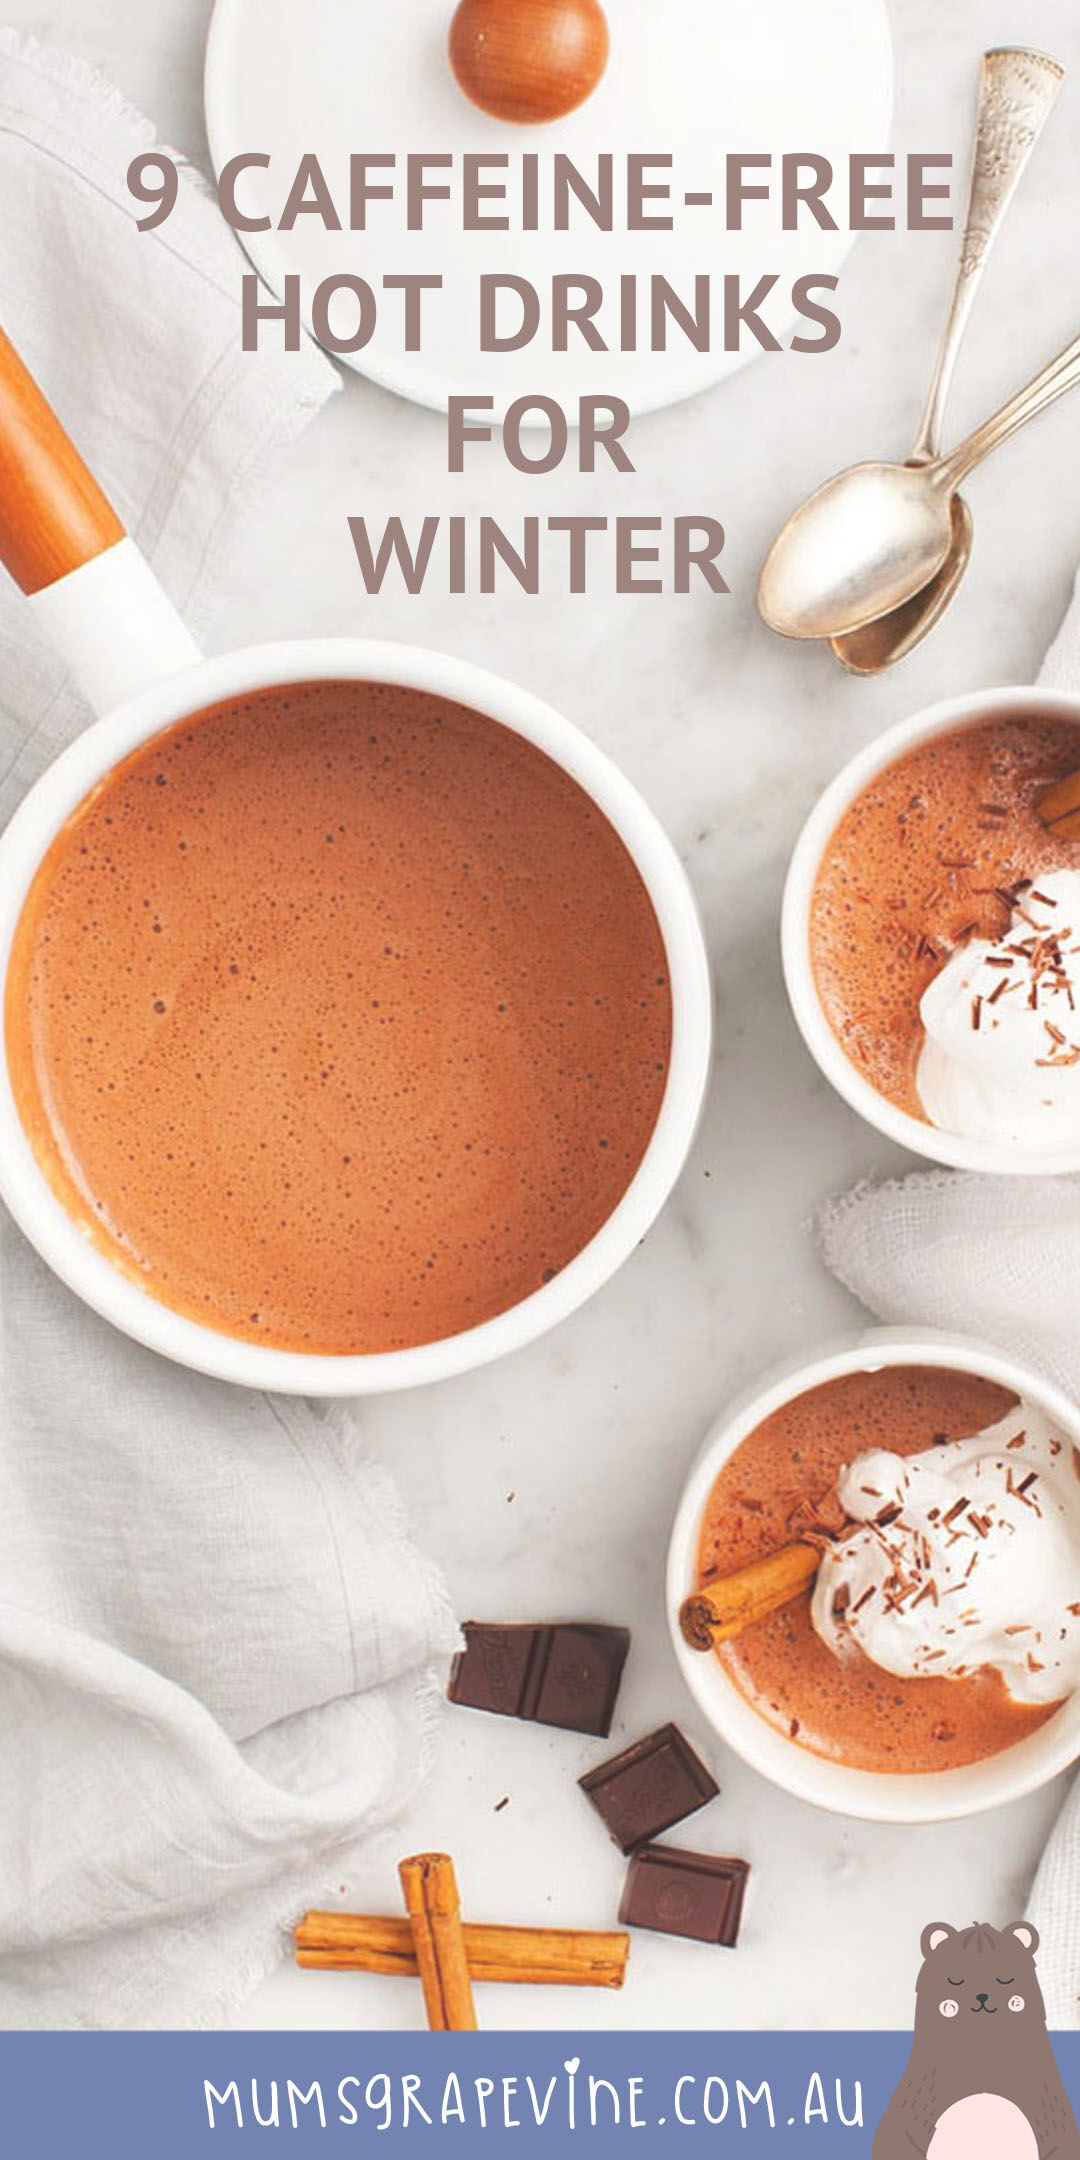 Caffeine-free hot drinks for winter